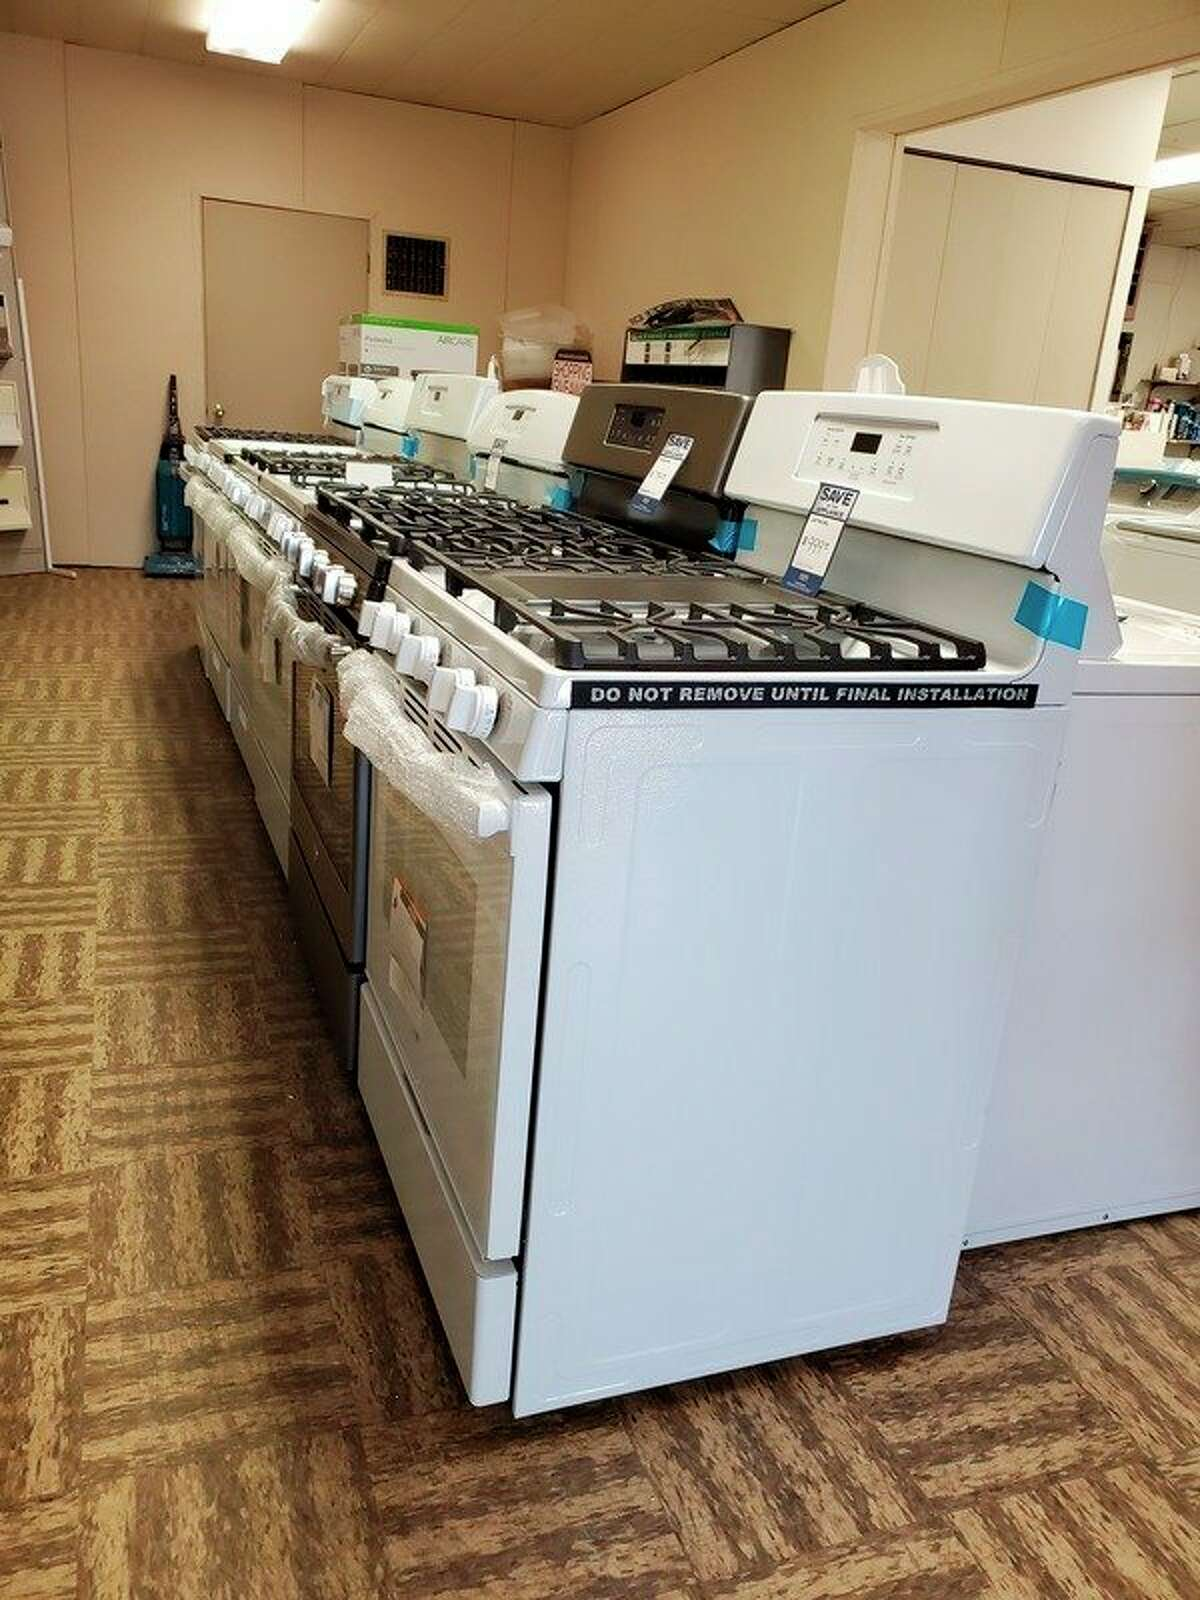 Thumb Hardware maintained an inventory of appliances throughout the pandemic despite increased demand and production shortages. (Scott Nunn/Tribune File Photo)